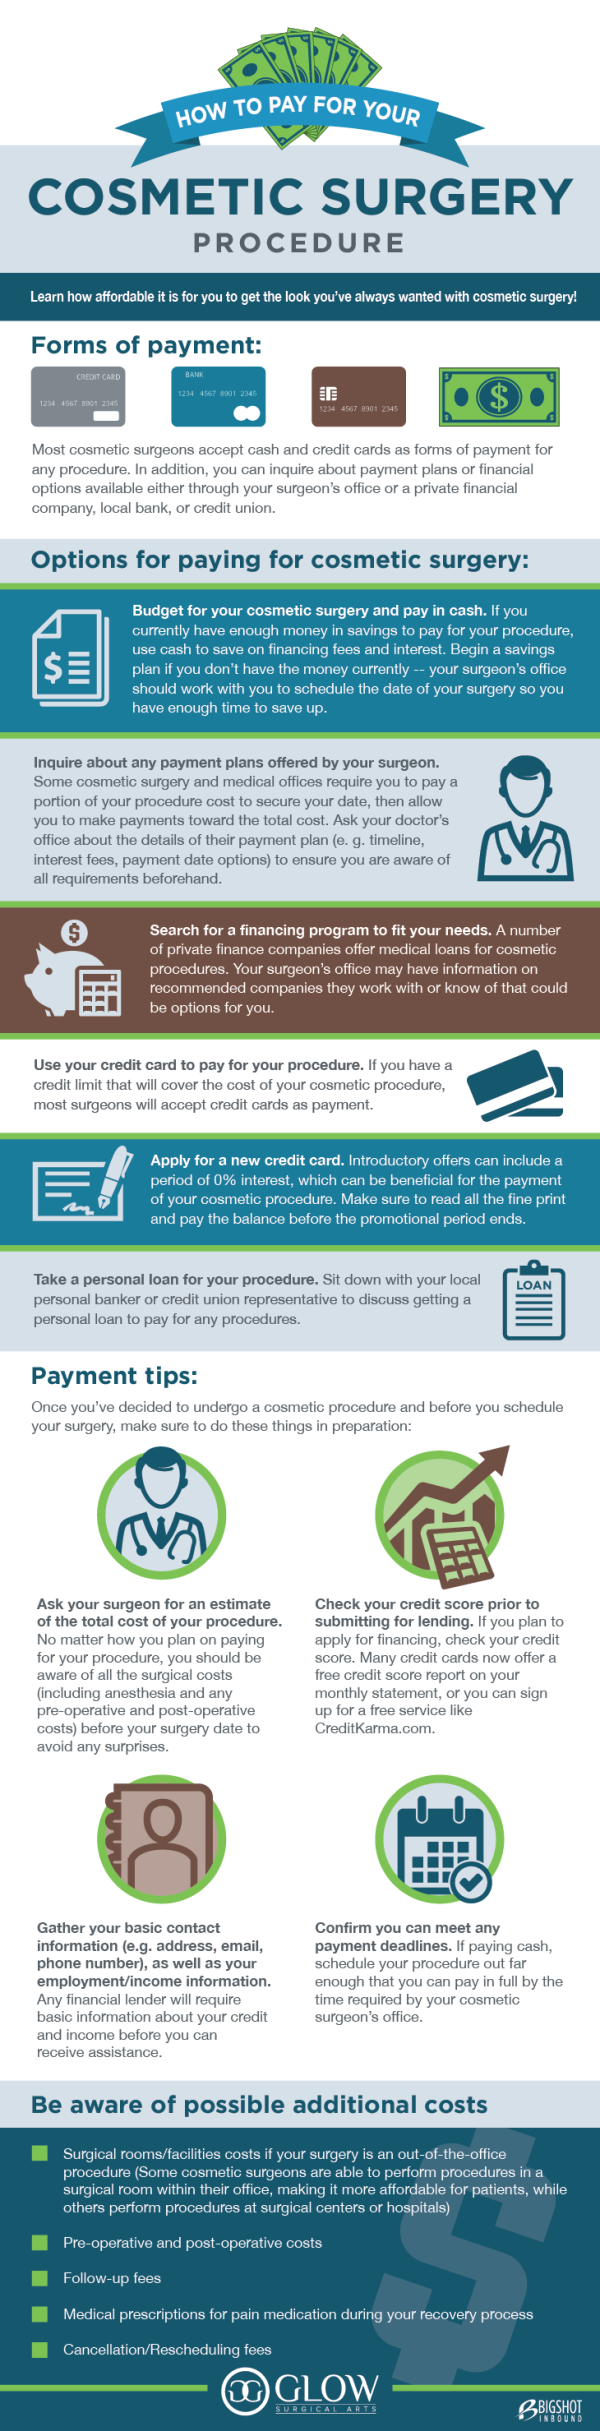 How to pay for your cosmetic surgery procedure